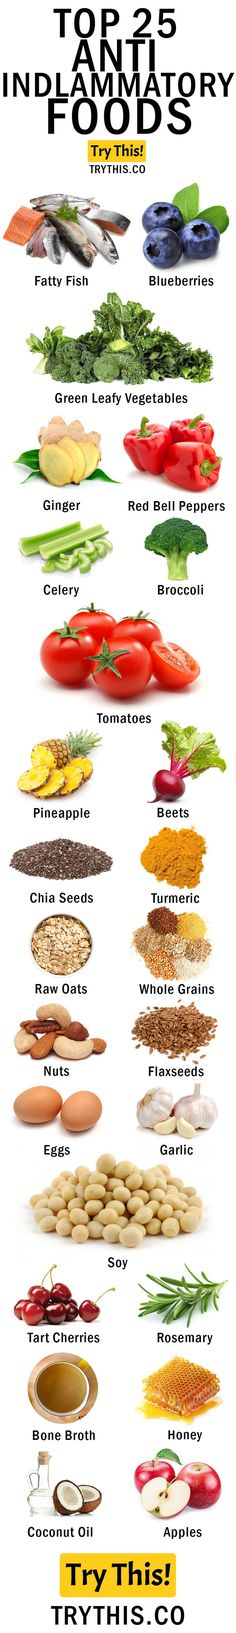 Natural Cures for Arthritis Hands - Top 25 Anti-Inflammatory Foods Arthritis Remedies Hands Natural Cures Natural Cure For Arthritis, Natural Cures, Healthy Foods To Eat, Healthy Tips, Healthy Recipes, Keto Recipes, Arthritis Remedies, Arthritis Hands, Low Fat Diet Plan